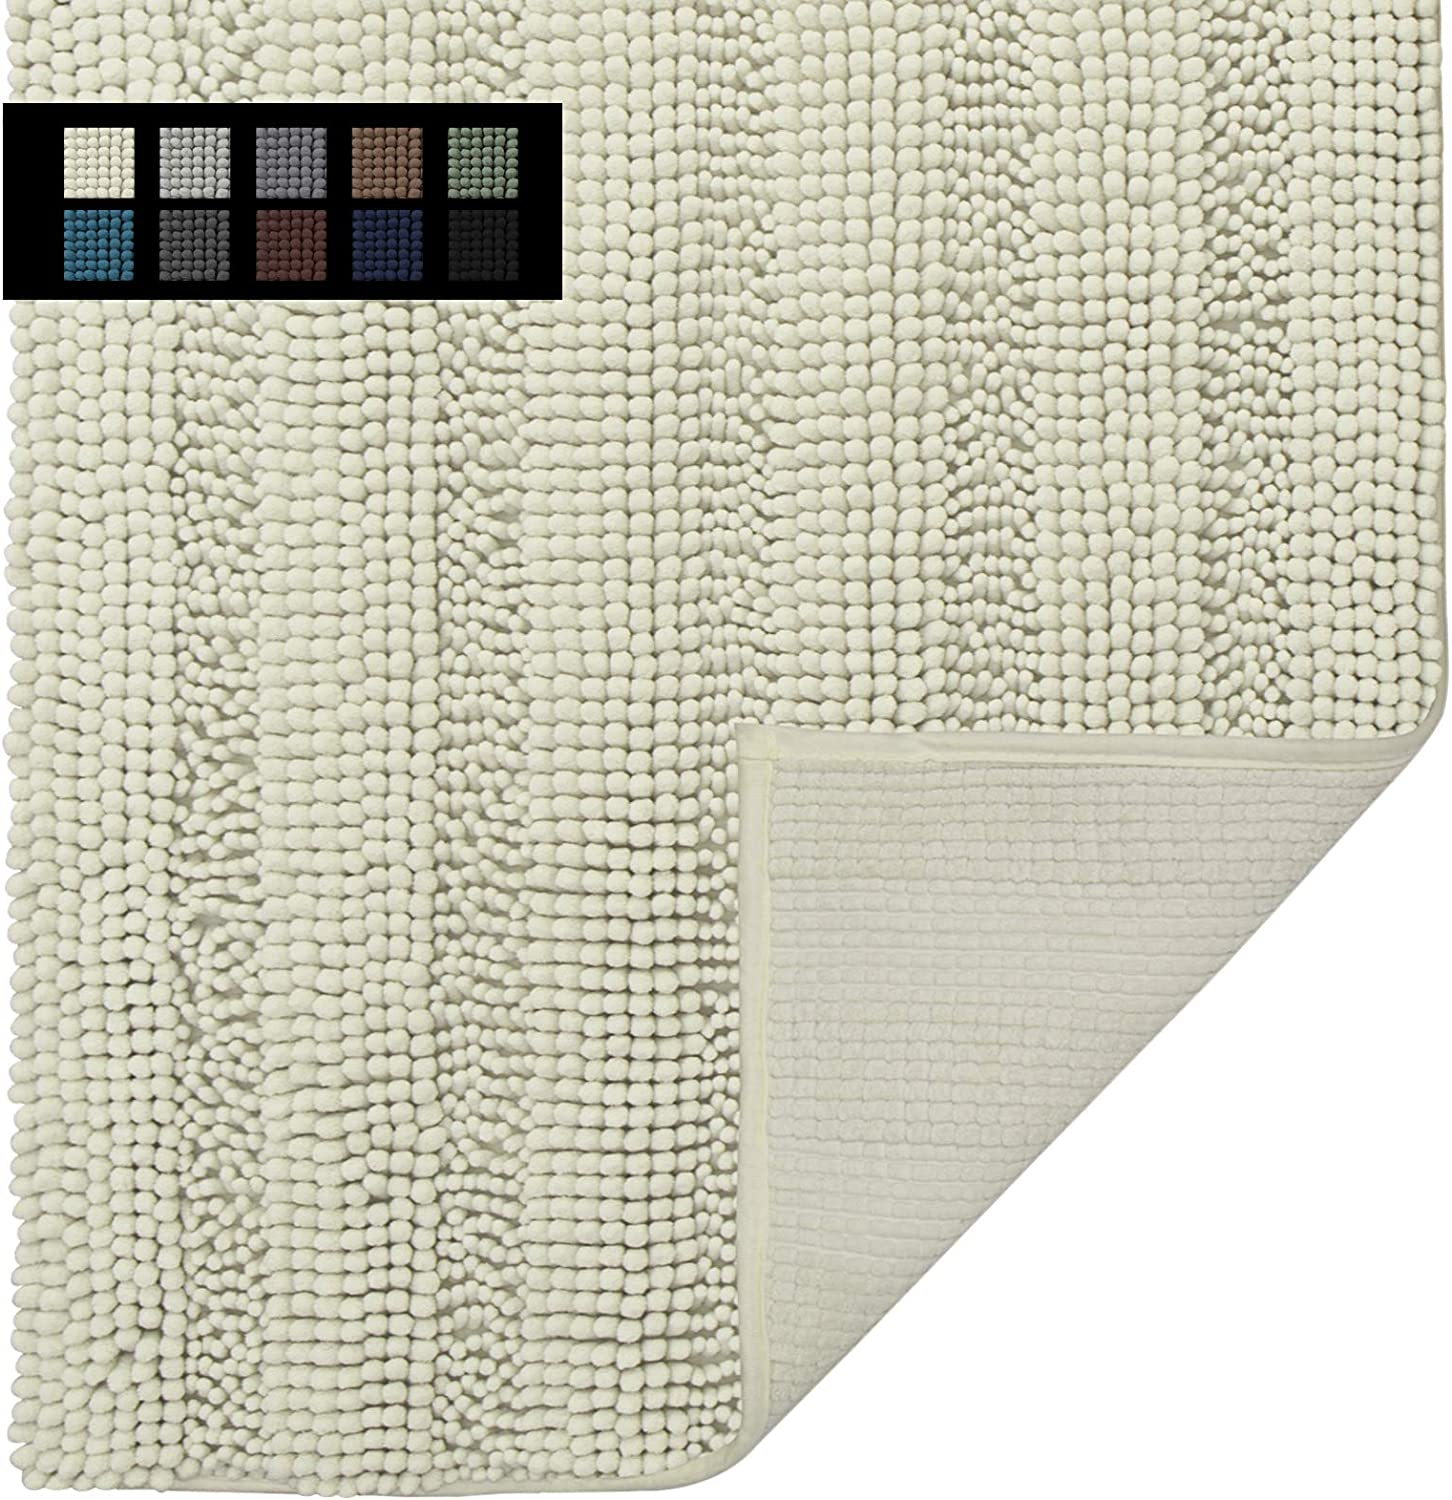 Easy-Going Luxury Chenille Striped Pattern Mat Bath 24x70 Dealing full price reduction in S Very popular!